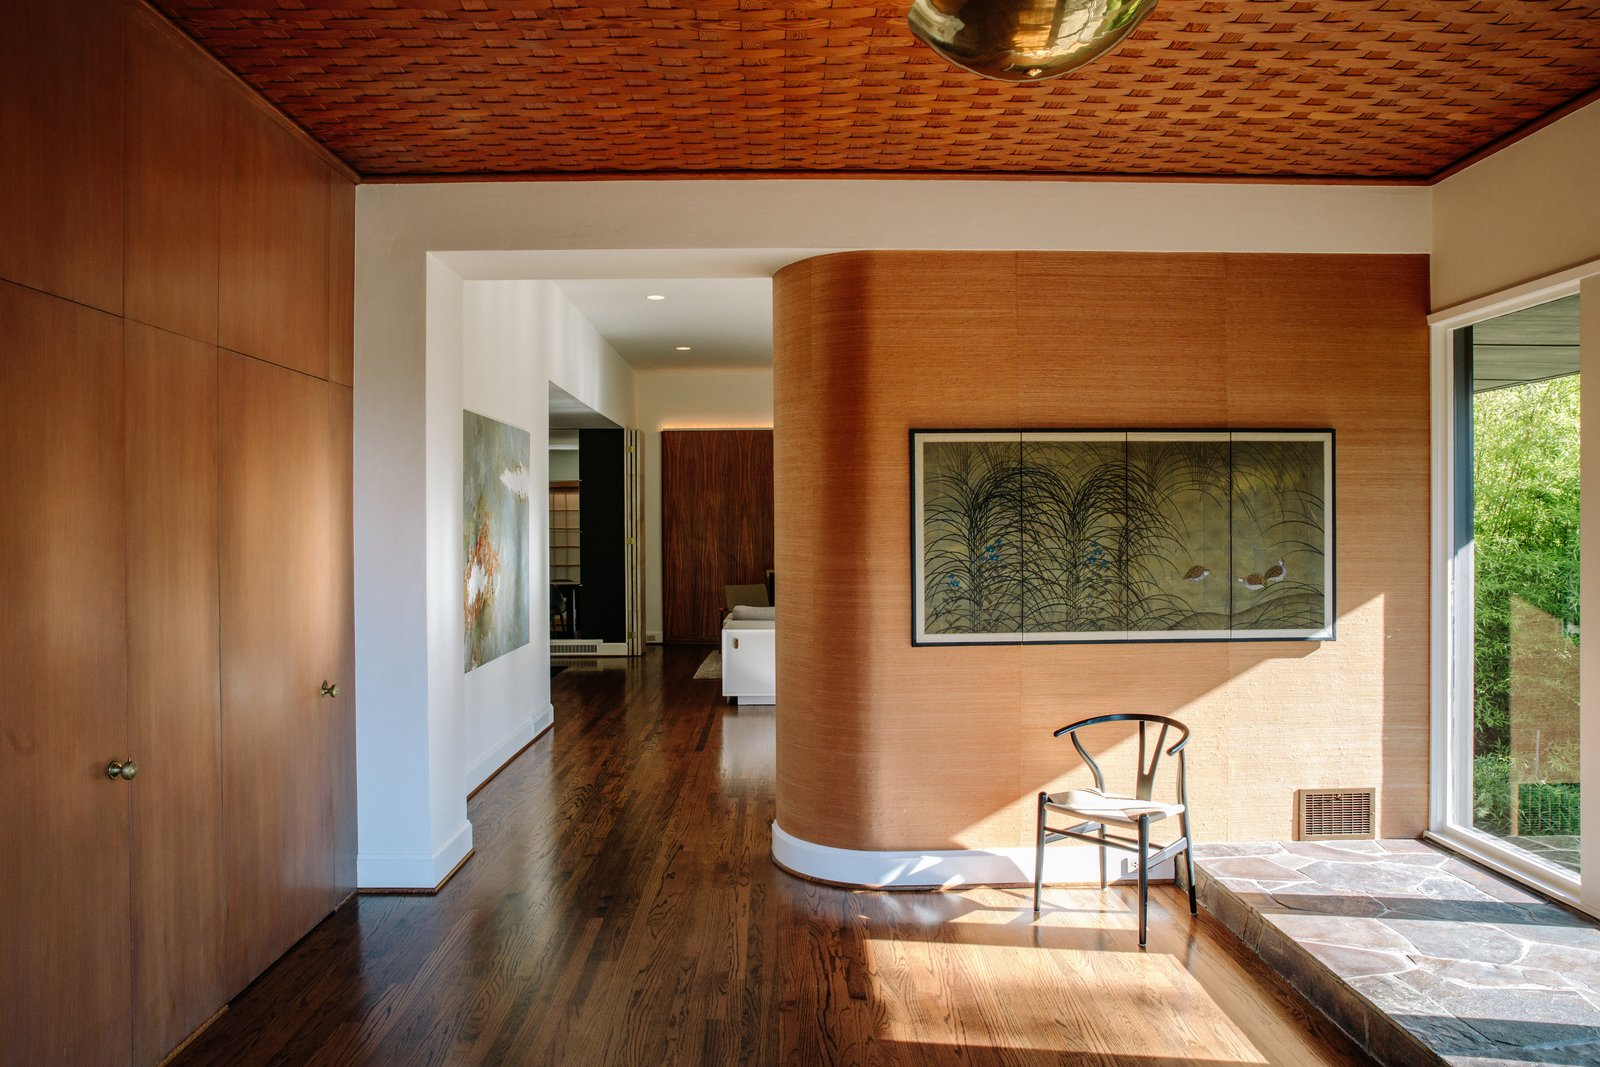 Living Room, Chair, Medium Hardwood Floor, and Ceiling Lighting A curved zebrawood wall greets visitors in the foyer.  Photo 3 of 15 in Nearly 80 Years Later, an Architect Rescues a Japanese-Inspired  Masterwork Designed by His Father